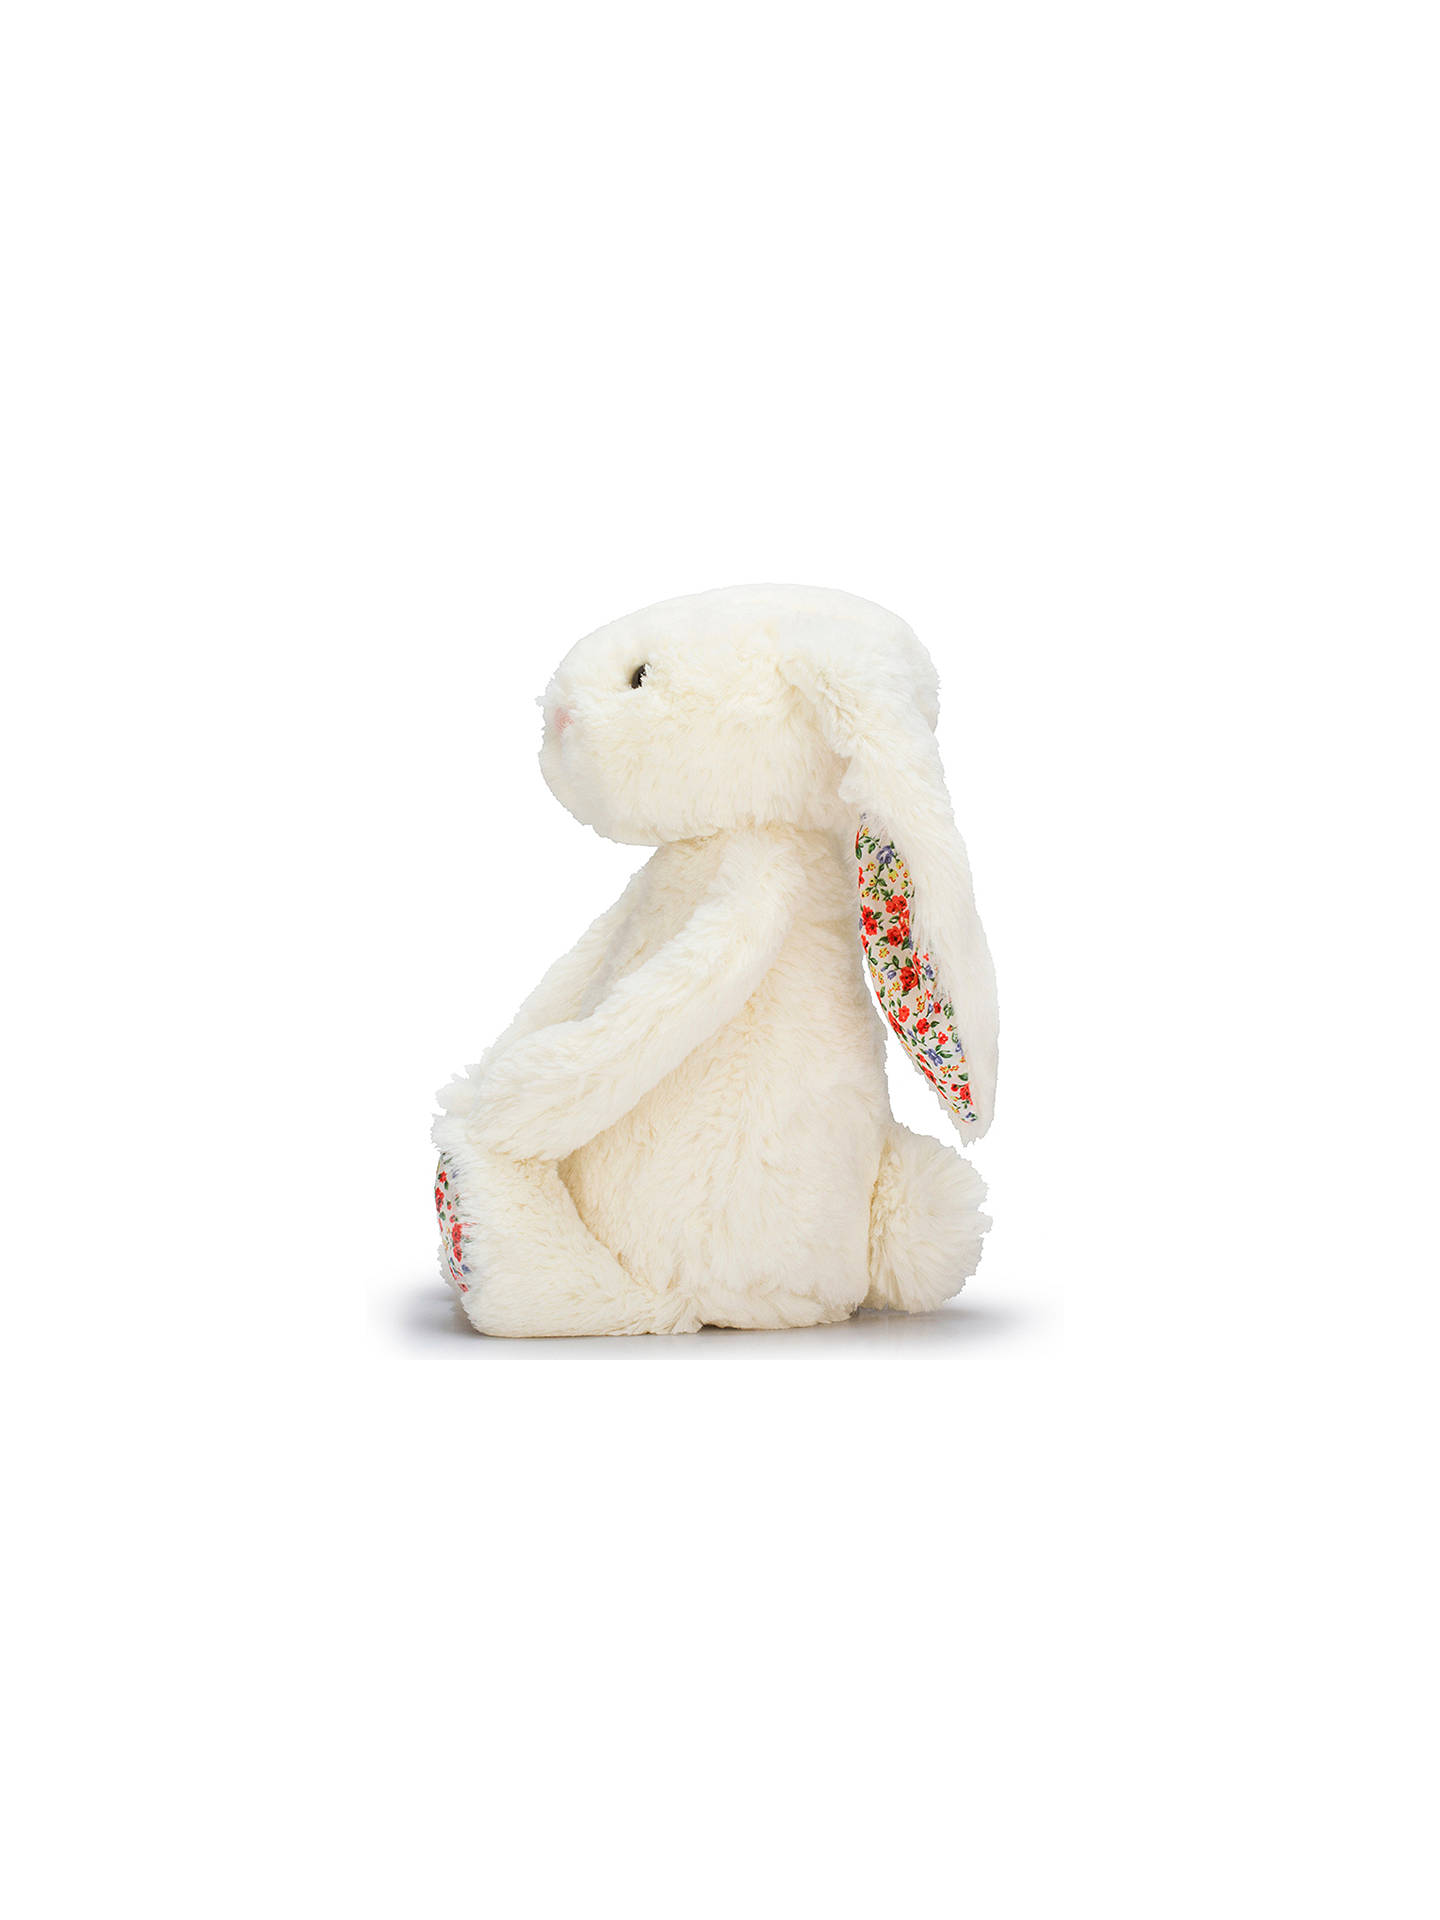 BuyJellycat Blossom Bunny Plush Soft Toy, Large, Cream Online at johnlewis.com